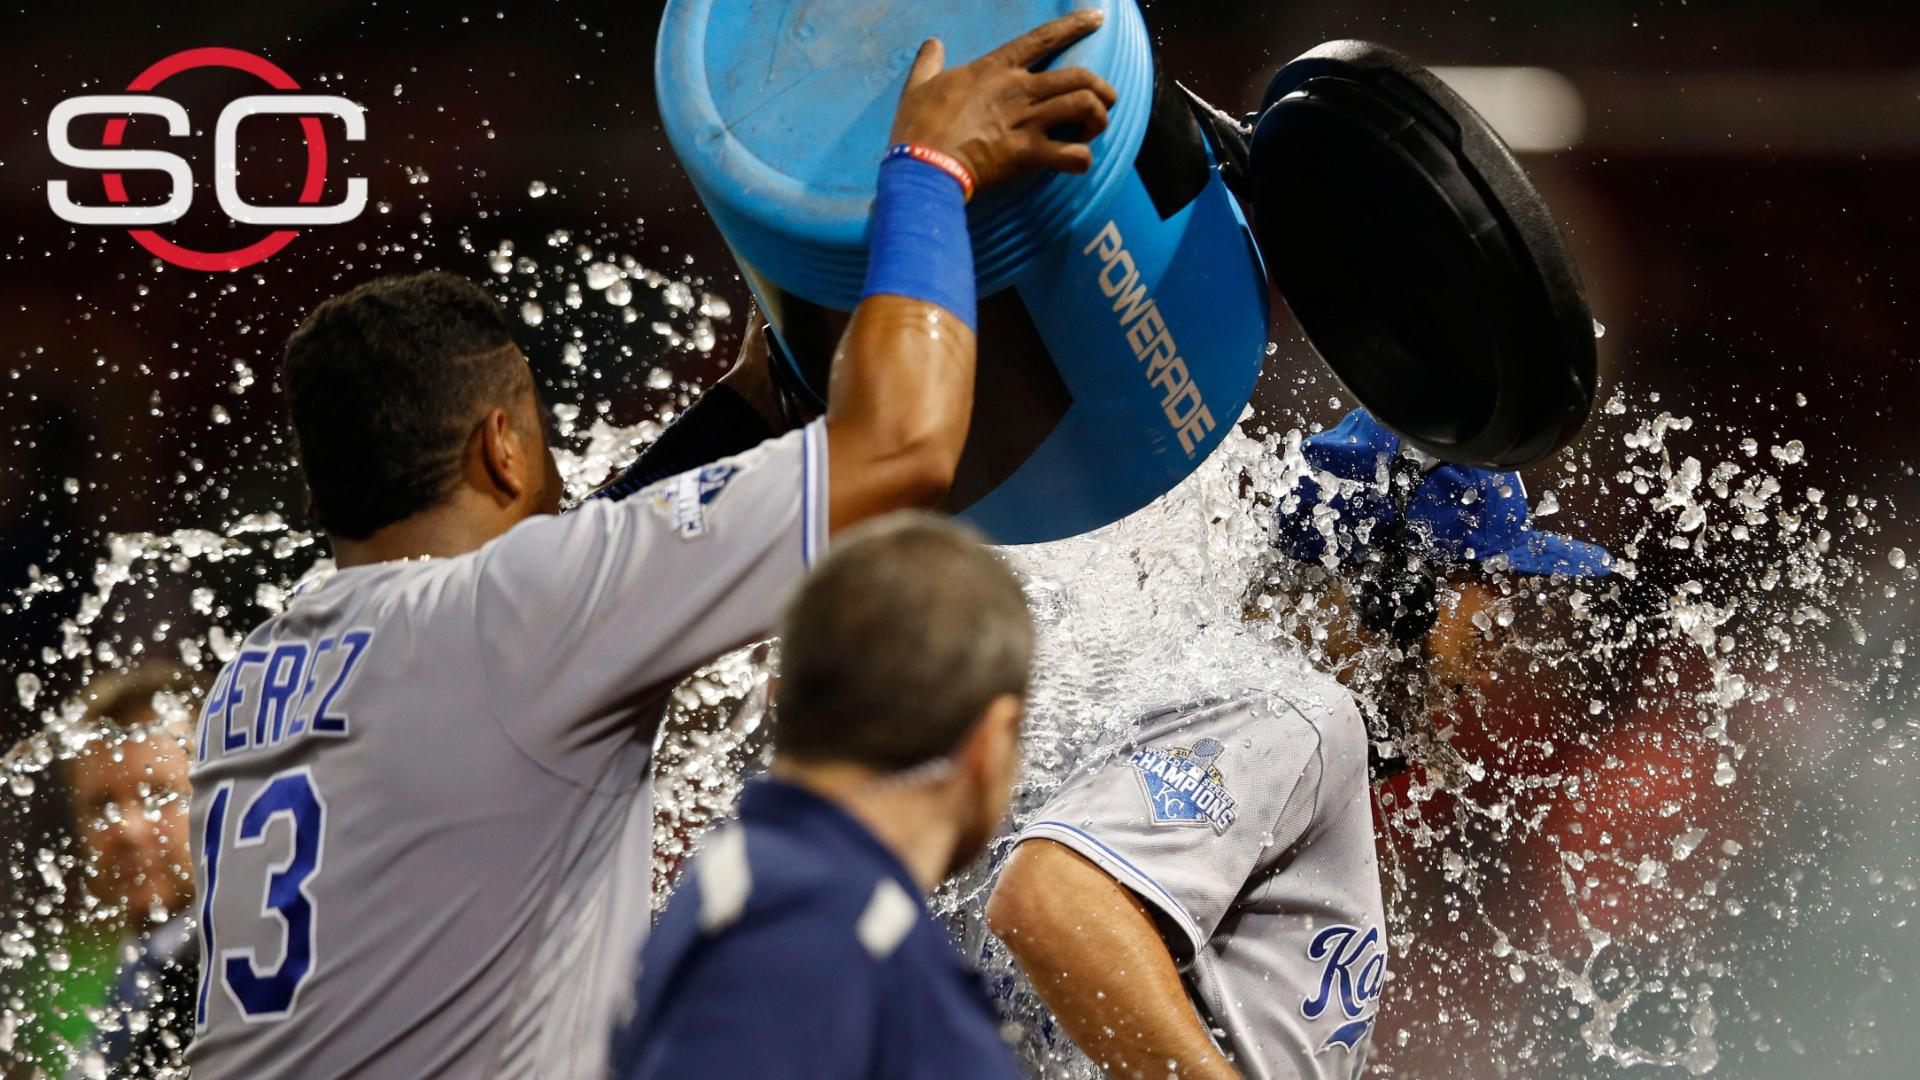 Hosmer gets splashed on SportsCenter